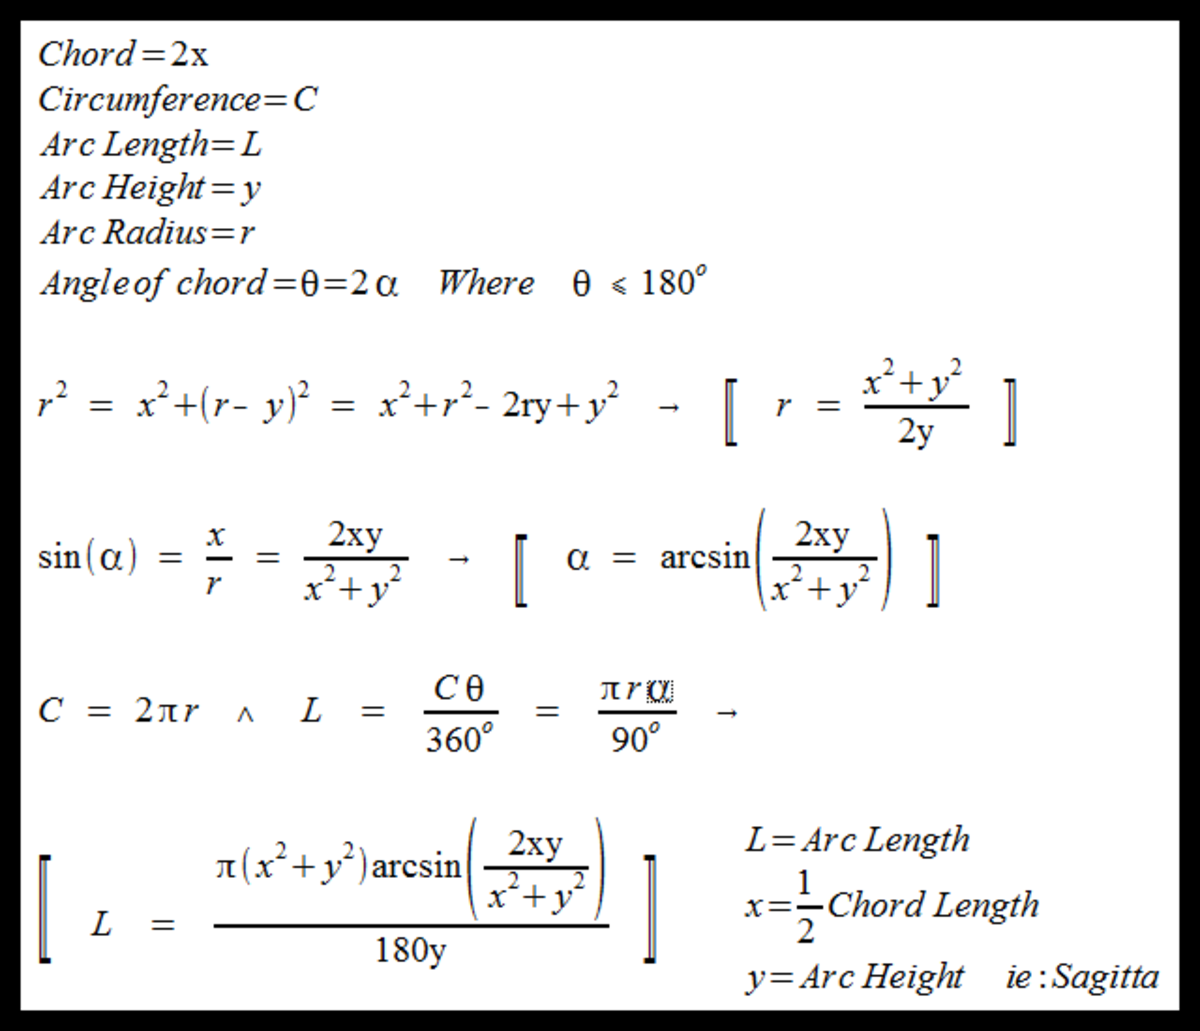 Arc length calculation given only the chord length and arc height arc length calculation derived ccuart Image collections